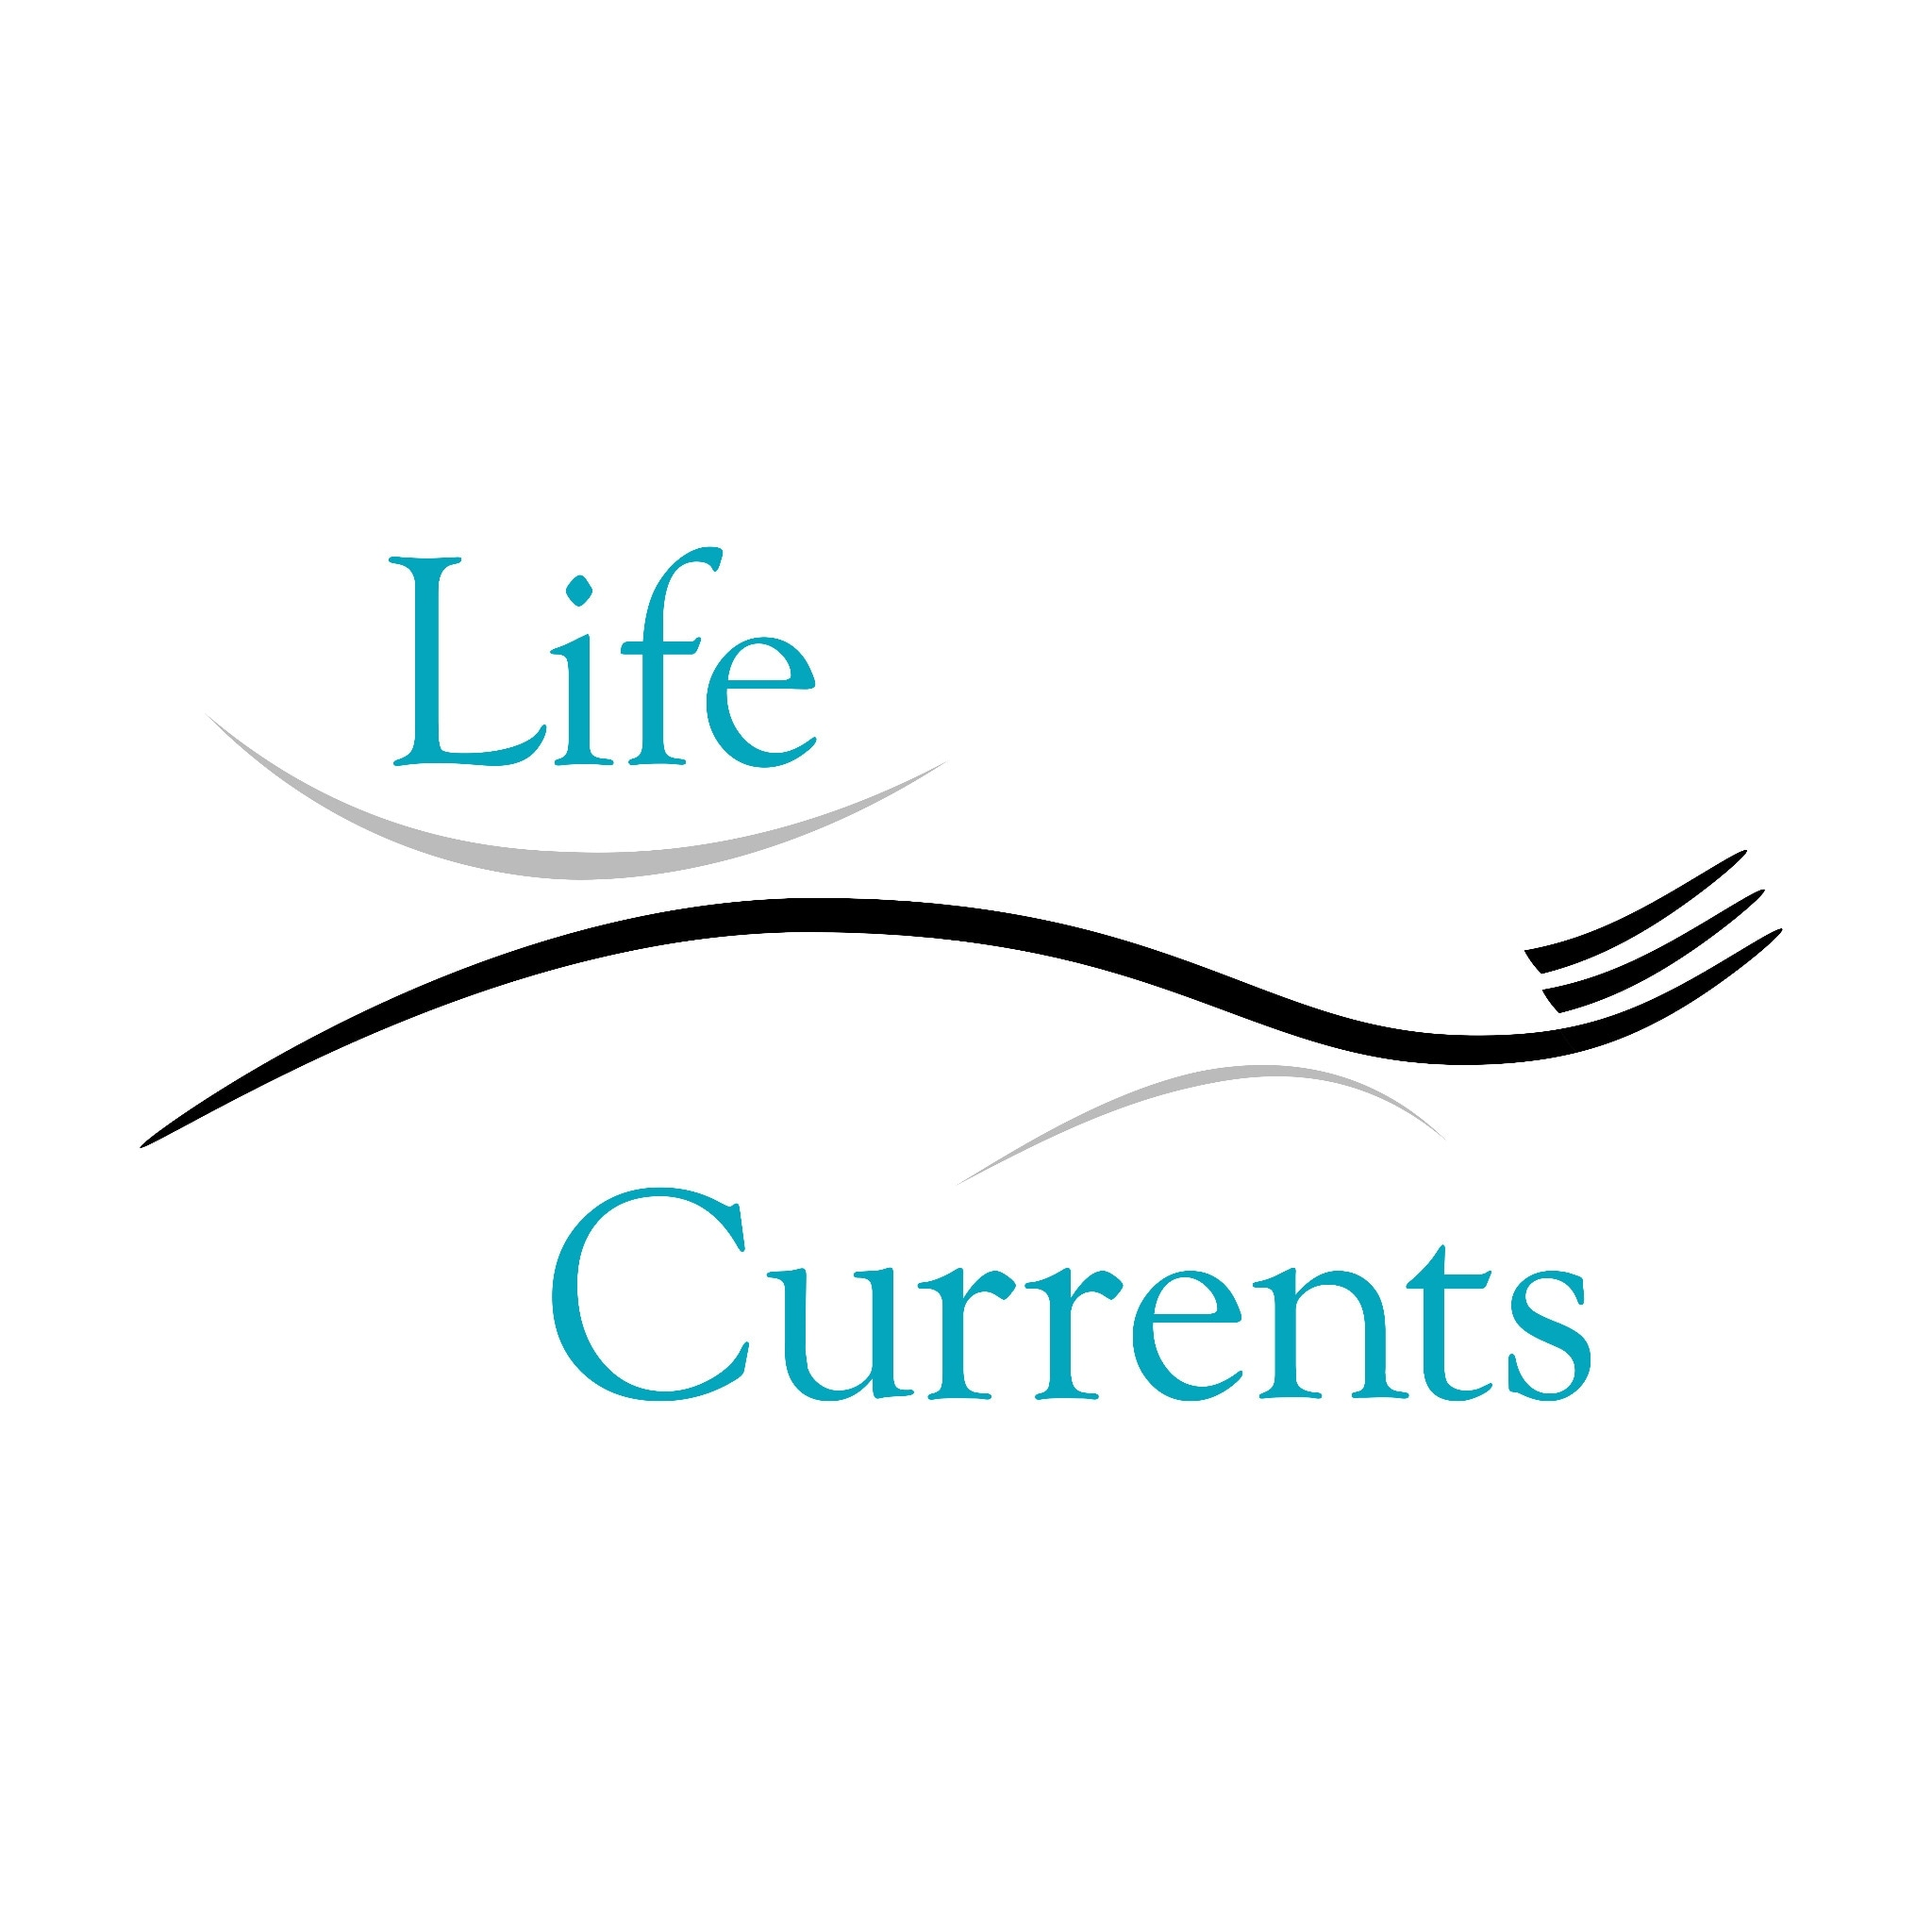 @lifeCurrents